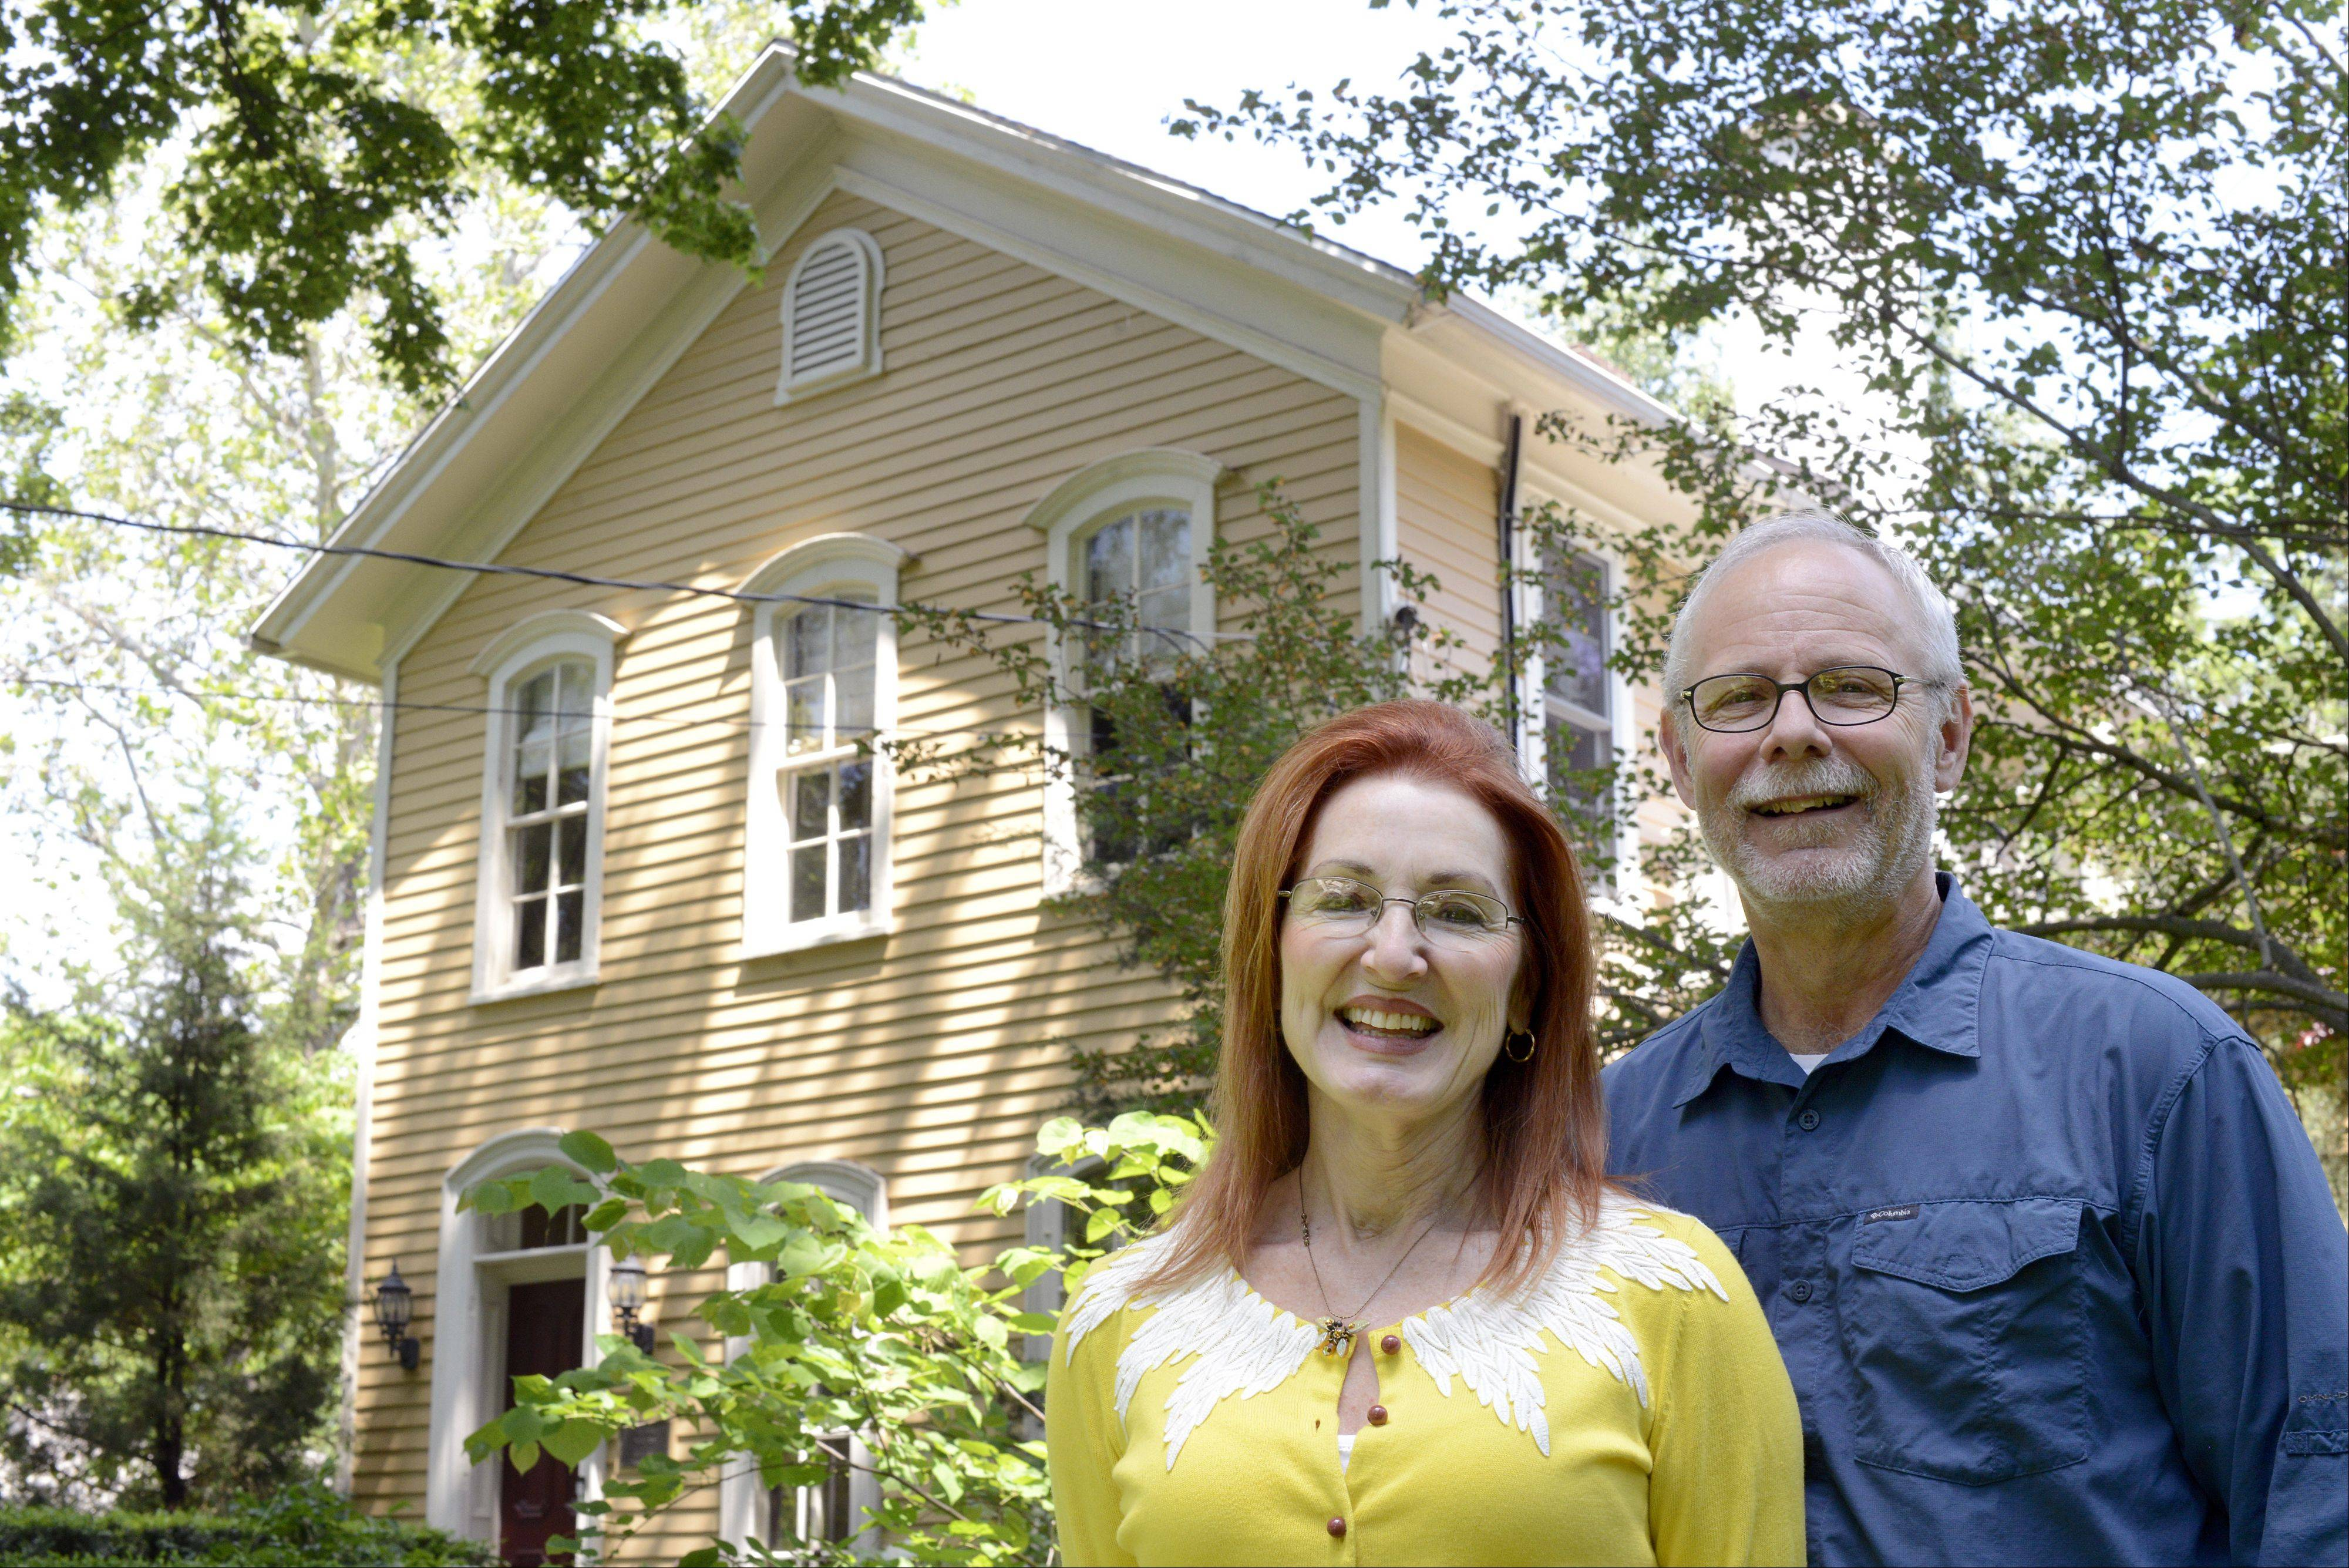 Donna and Craig Ostrye are the current owners of the historic Curtis house at 1301 Batavia Ave. in Geneva. They brought back the structure to its former glory after many years of work. The home is now on the market.